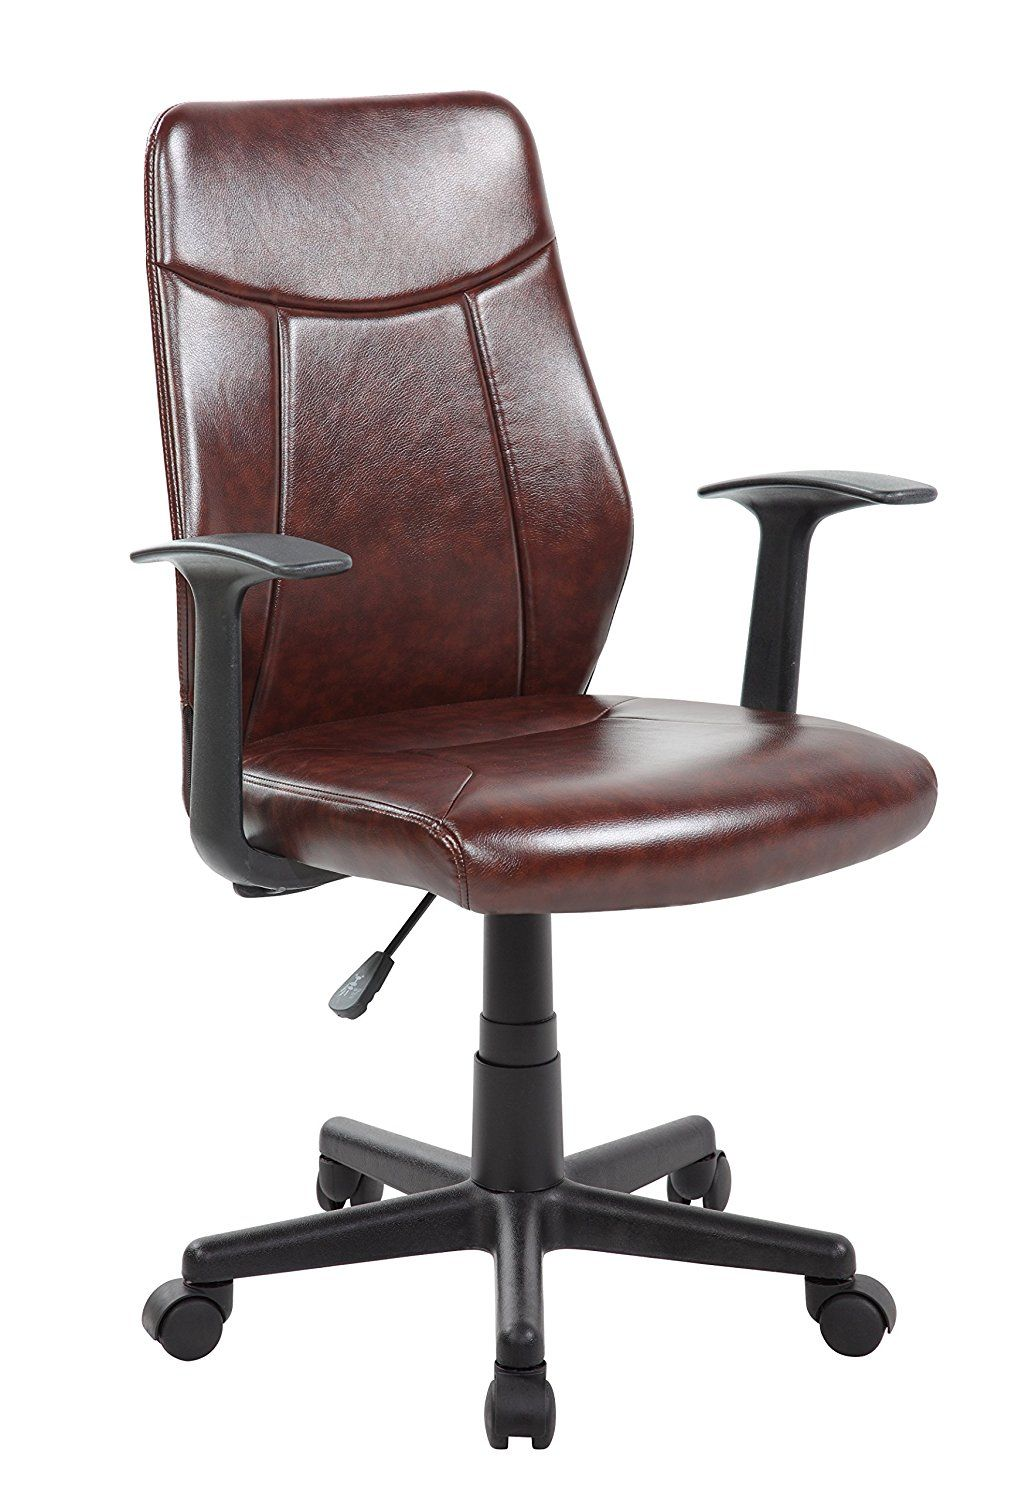 #Anji Adjustable Mid Back Brown Leather Computer Office Desk Chair With  Armrest